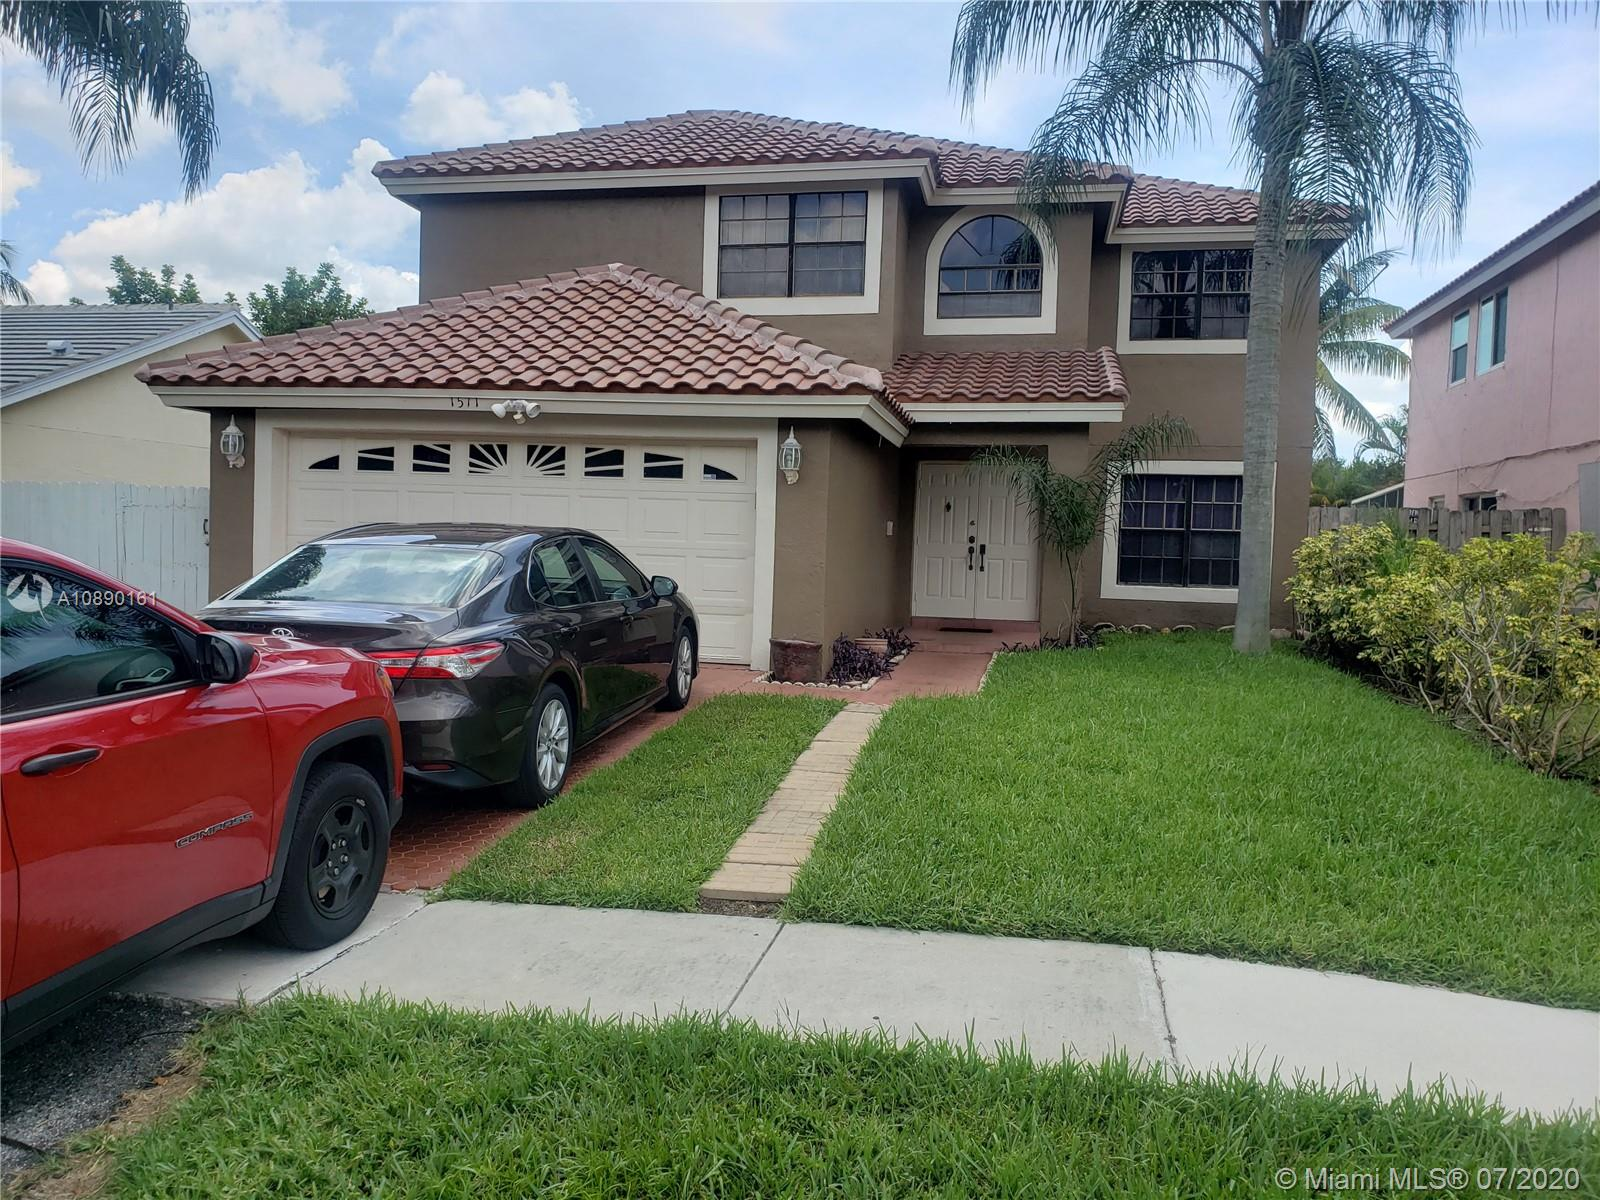 This beautiful 2 story 4 Bedroom 2 Bathroom home sits in the heart of Pembroke Pines.  This spacious beauty is ready for a new family.  Looking for space, look no further.  NEW ROOF, LOW TAXES, and LOW HOMEOWNERS ASSOCIATION FEES with great amenities (community pools, parks, etc).  Exceptional living at an affordable price.  Enjoy your beautiful and serene back yard located close to major schools, shopping, and highways.  This one won't last!  Make an offer...Show and sell!  ***Showings will begin on Monday from 4-6***